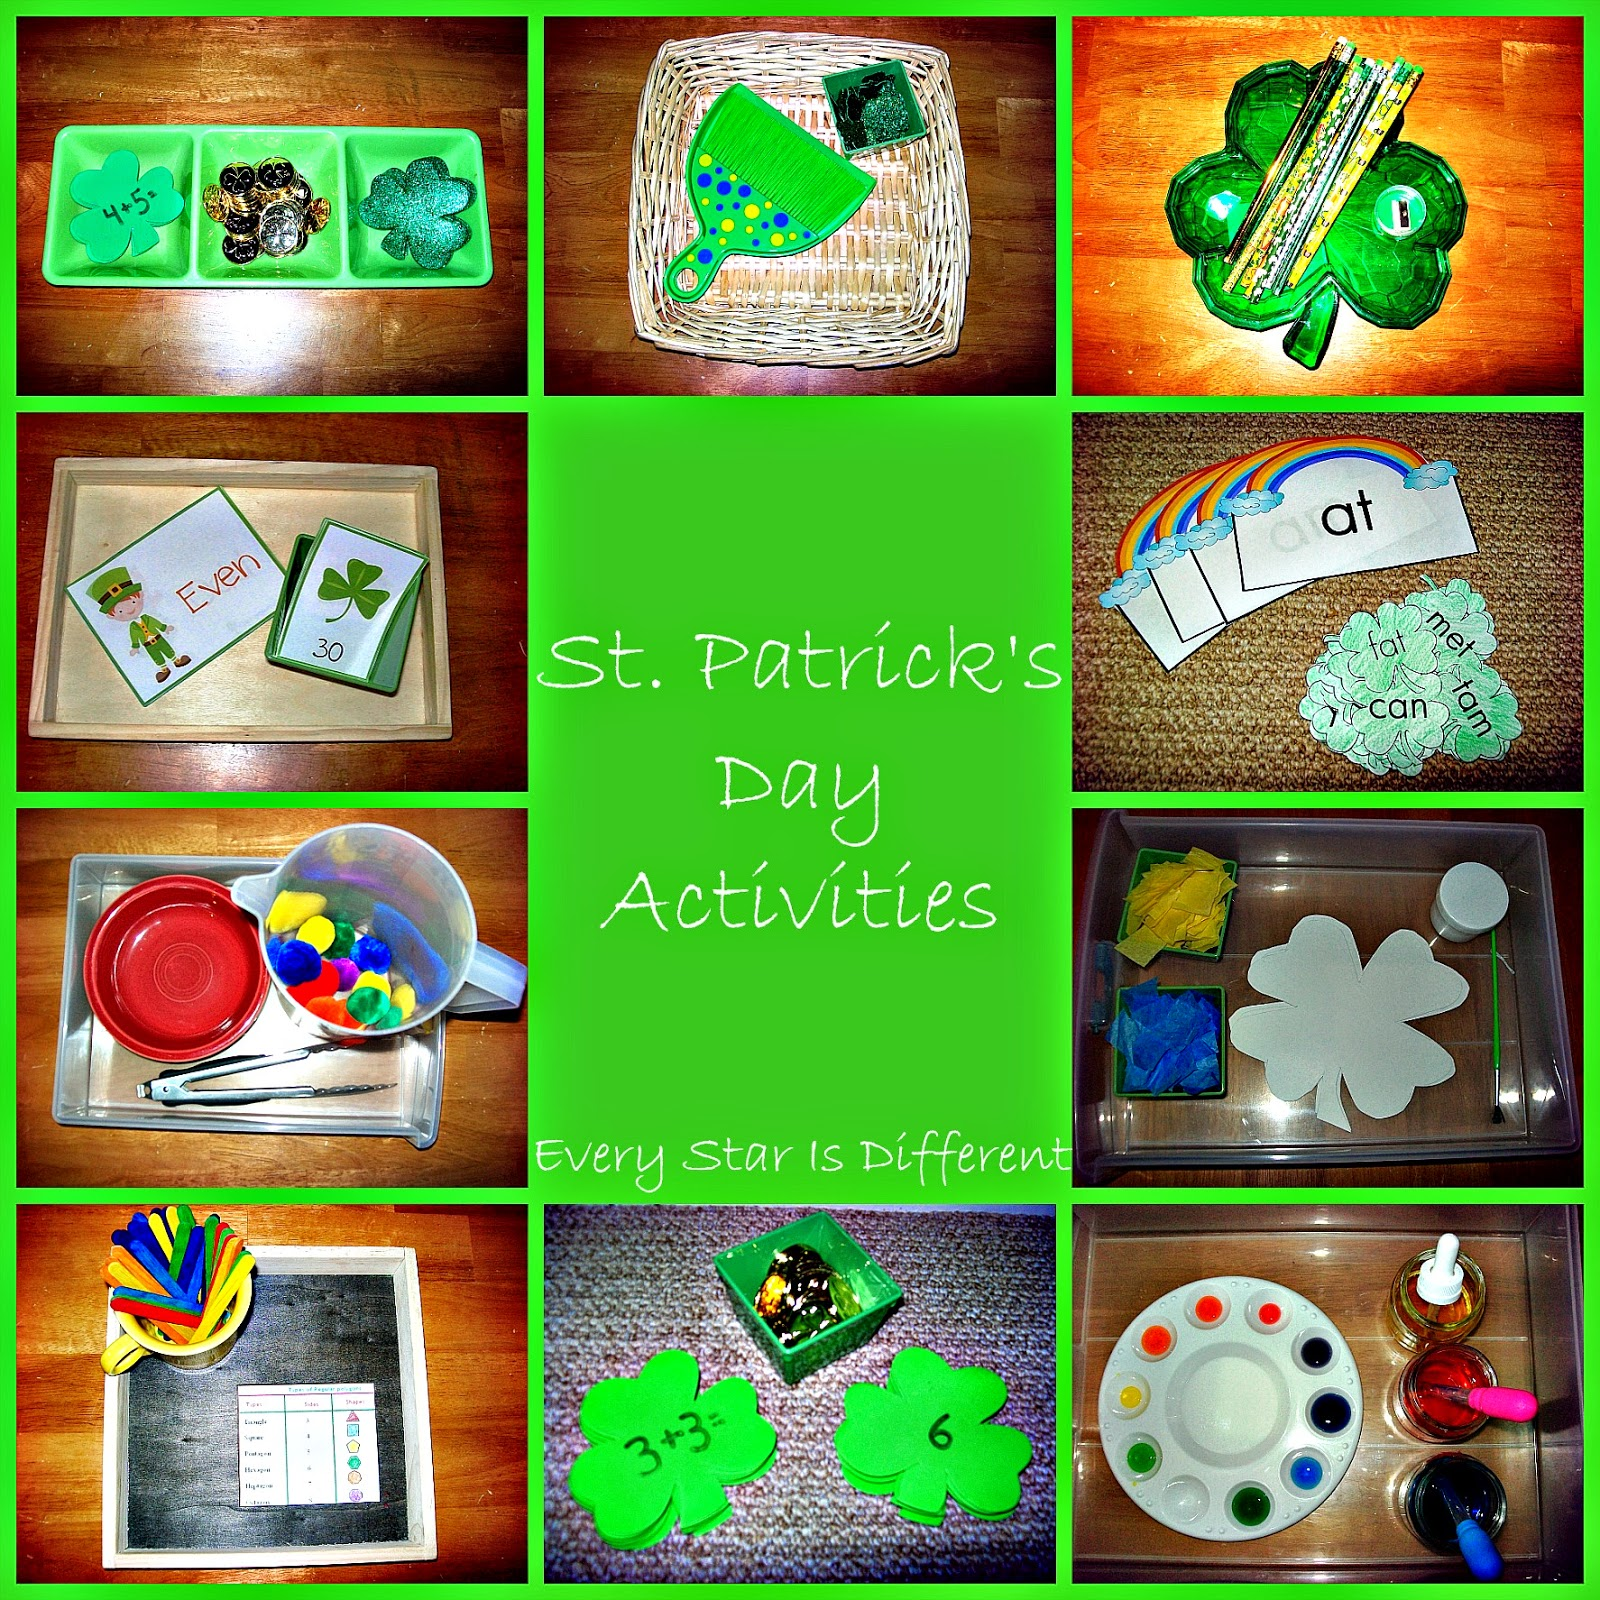 Every Star Is Different St Patrick S Day Activities Amp Free Printables